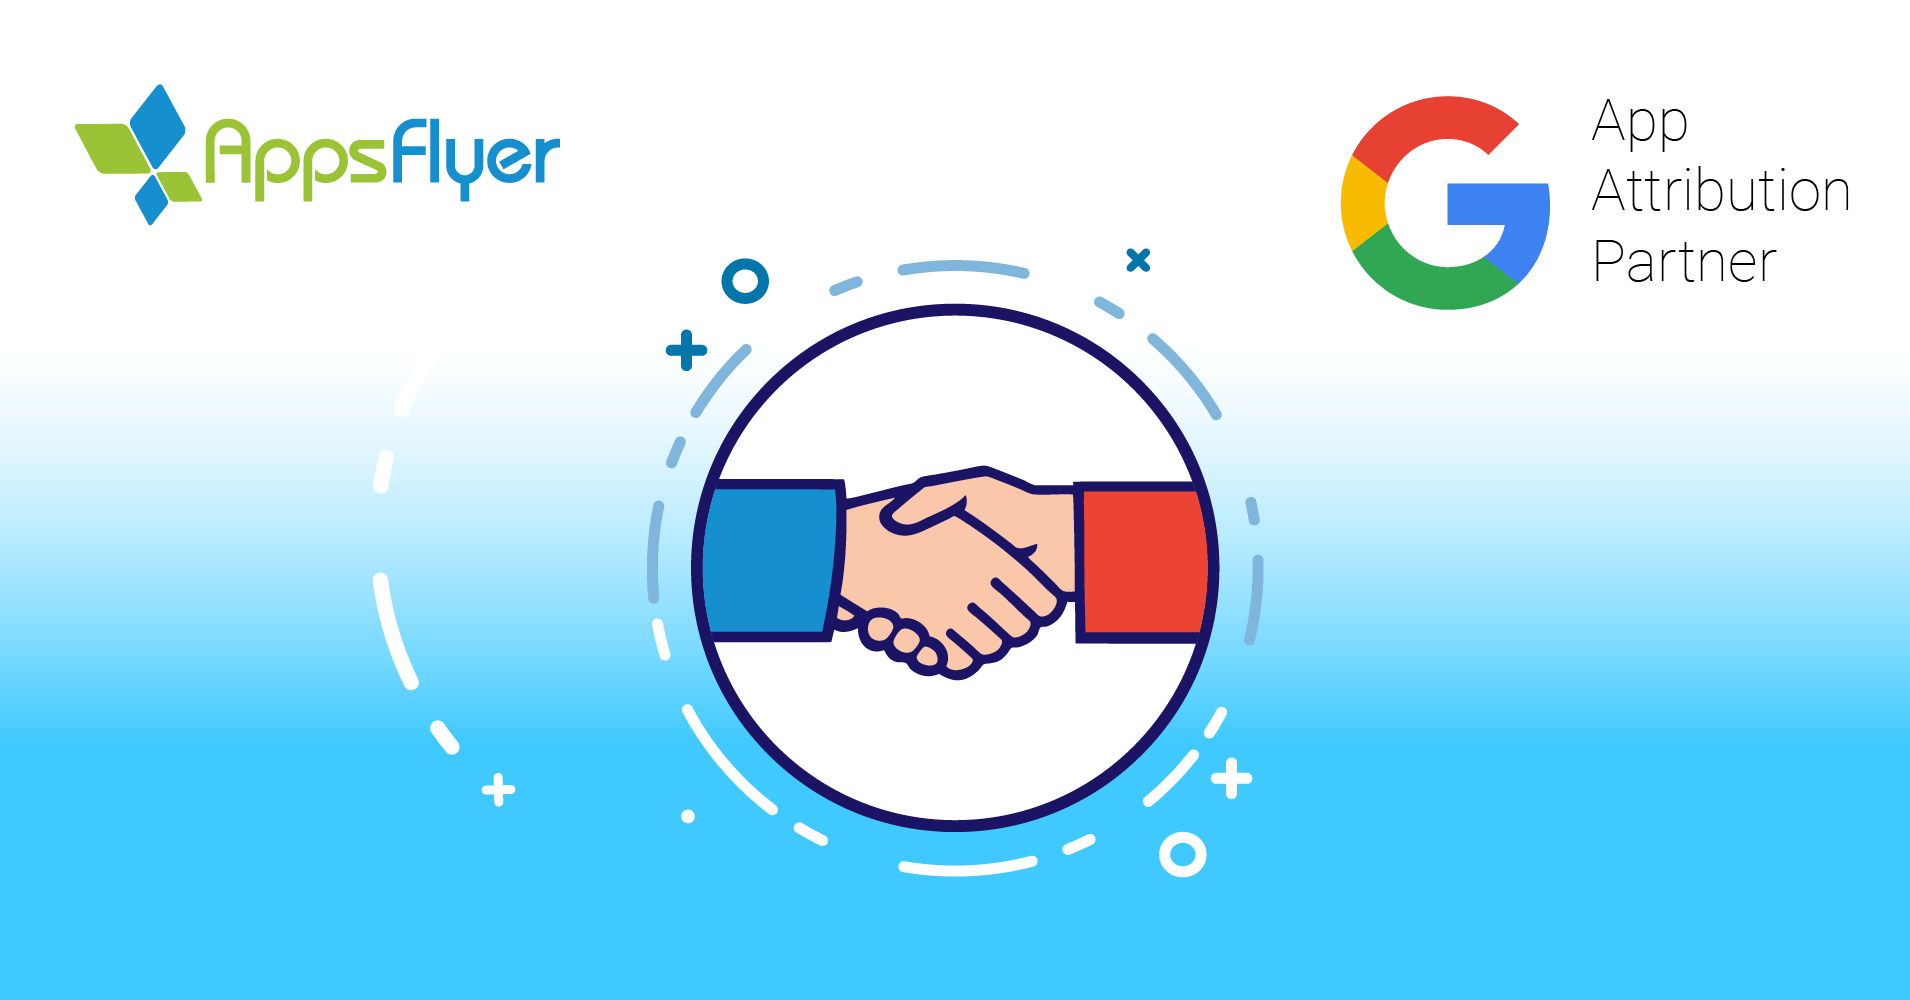 Official Collaboration with Google Drives Improved Measurement in AppsFlyer